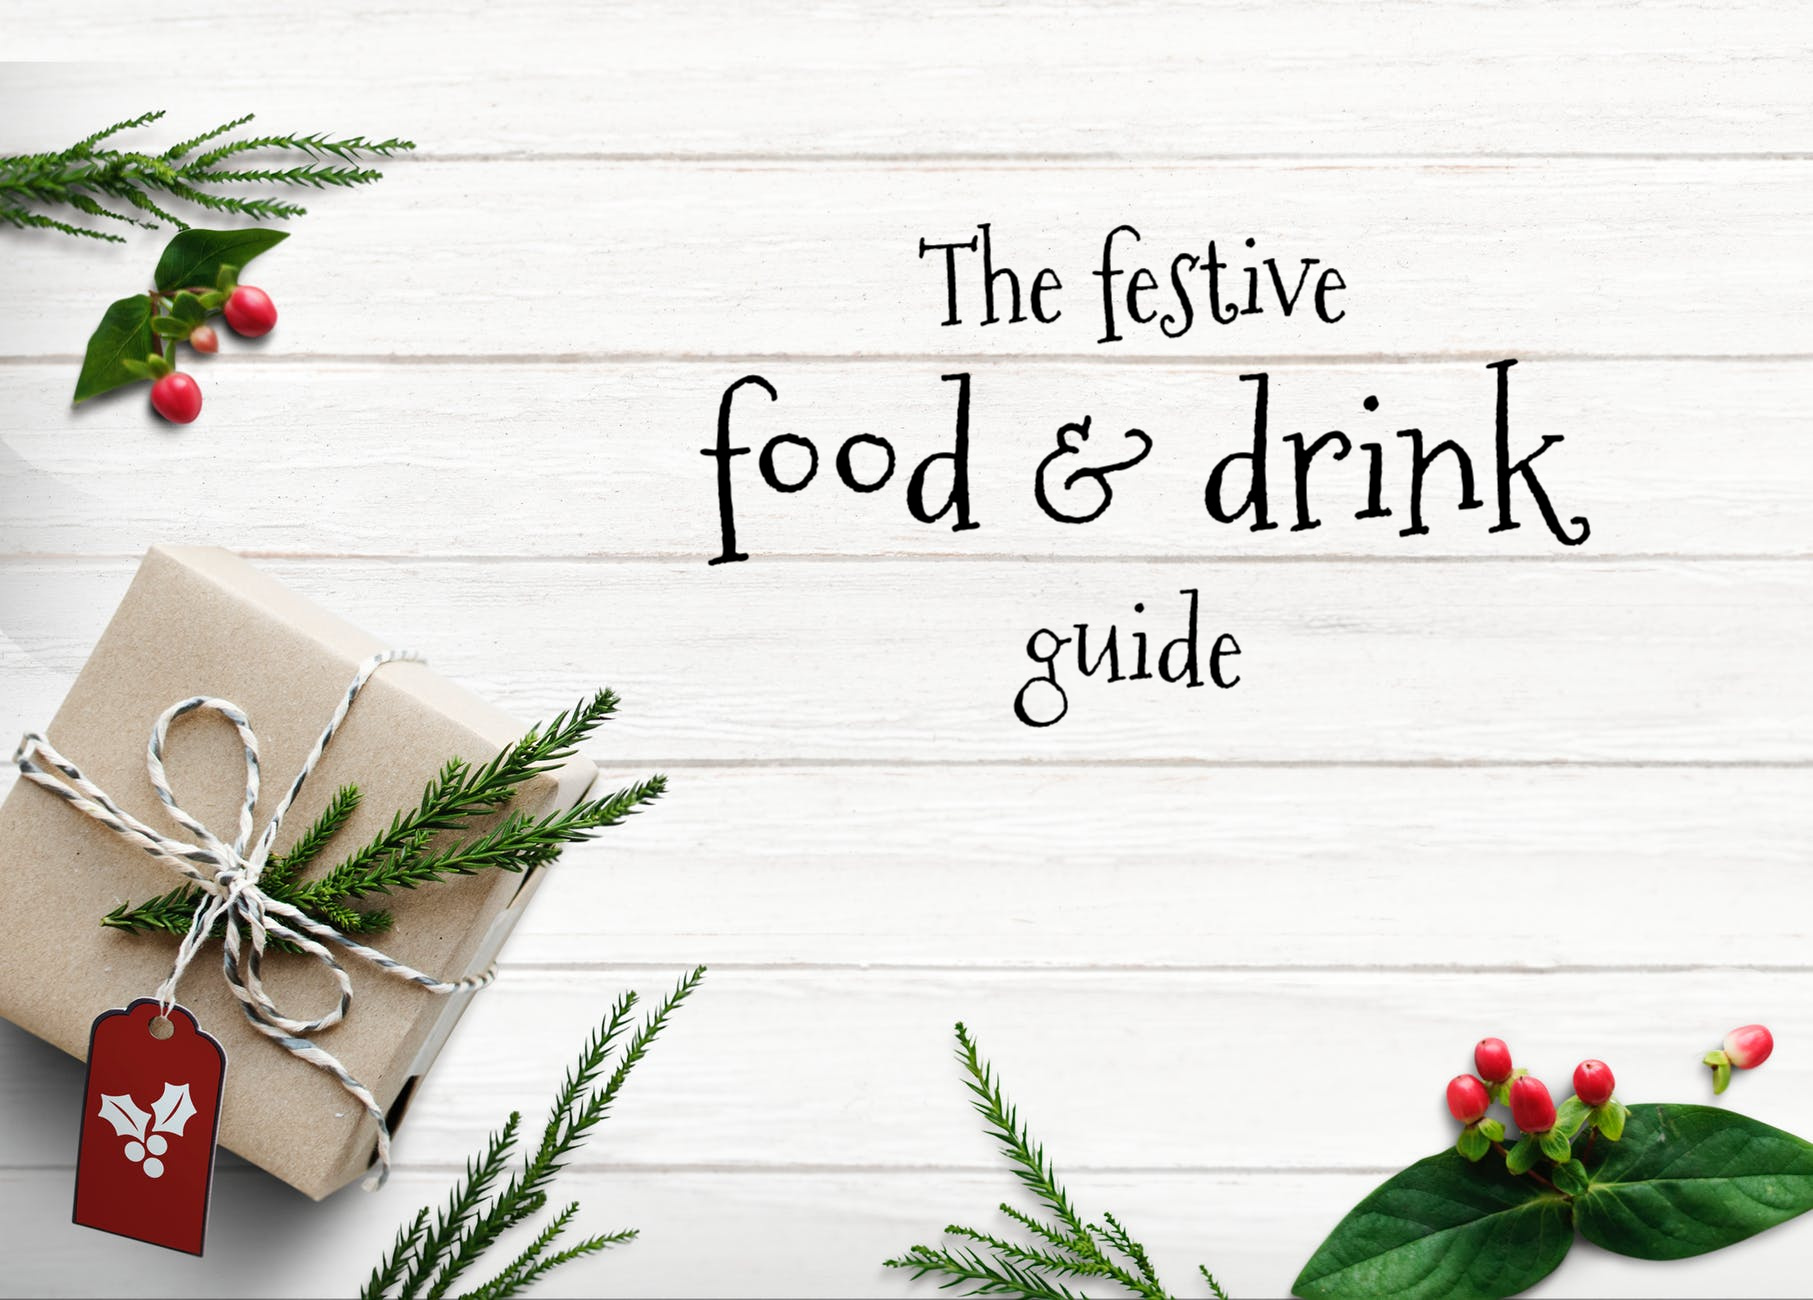 The festive food & drink guide